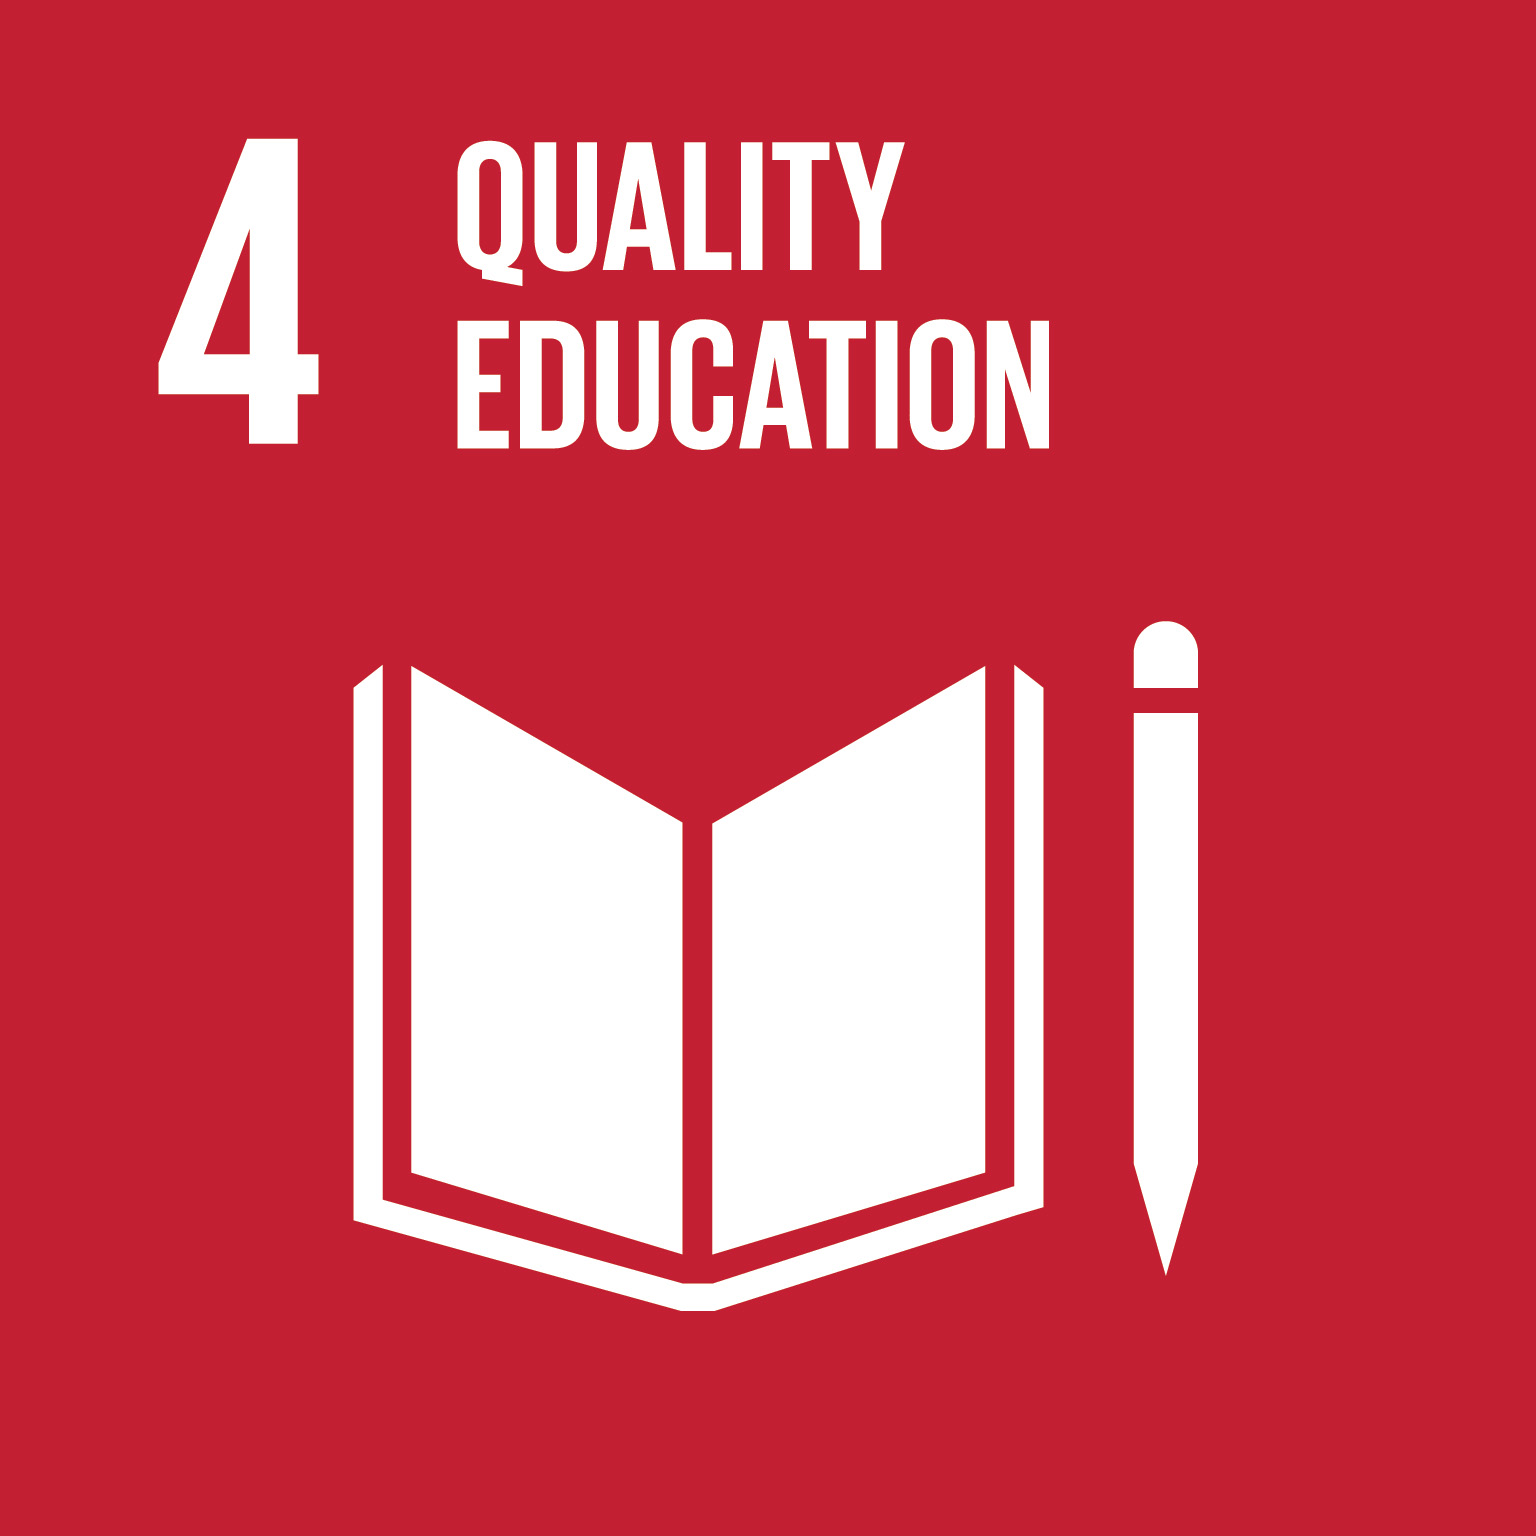 Goal 4 – Quality Education